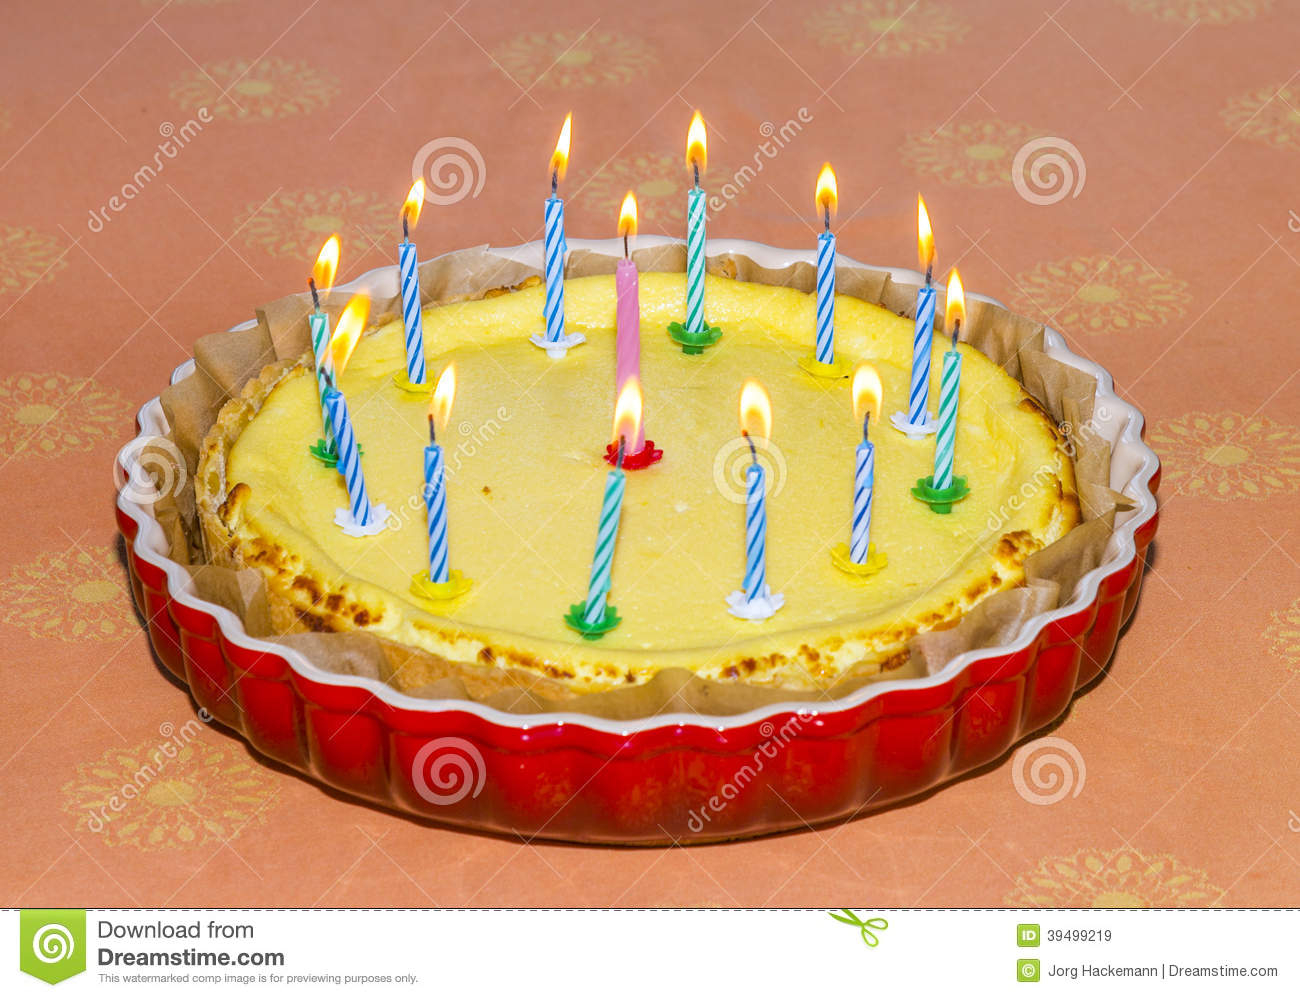 Birthday Cake With Lots Of Candles Birthday Cake With Lots Of Candles Stock Image Image Of Background